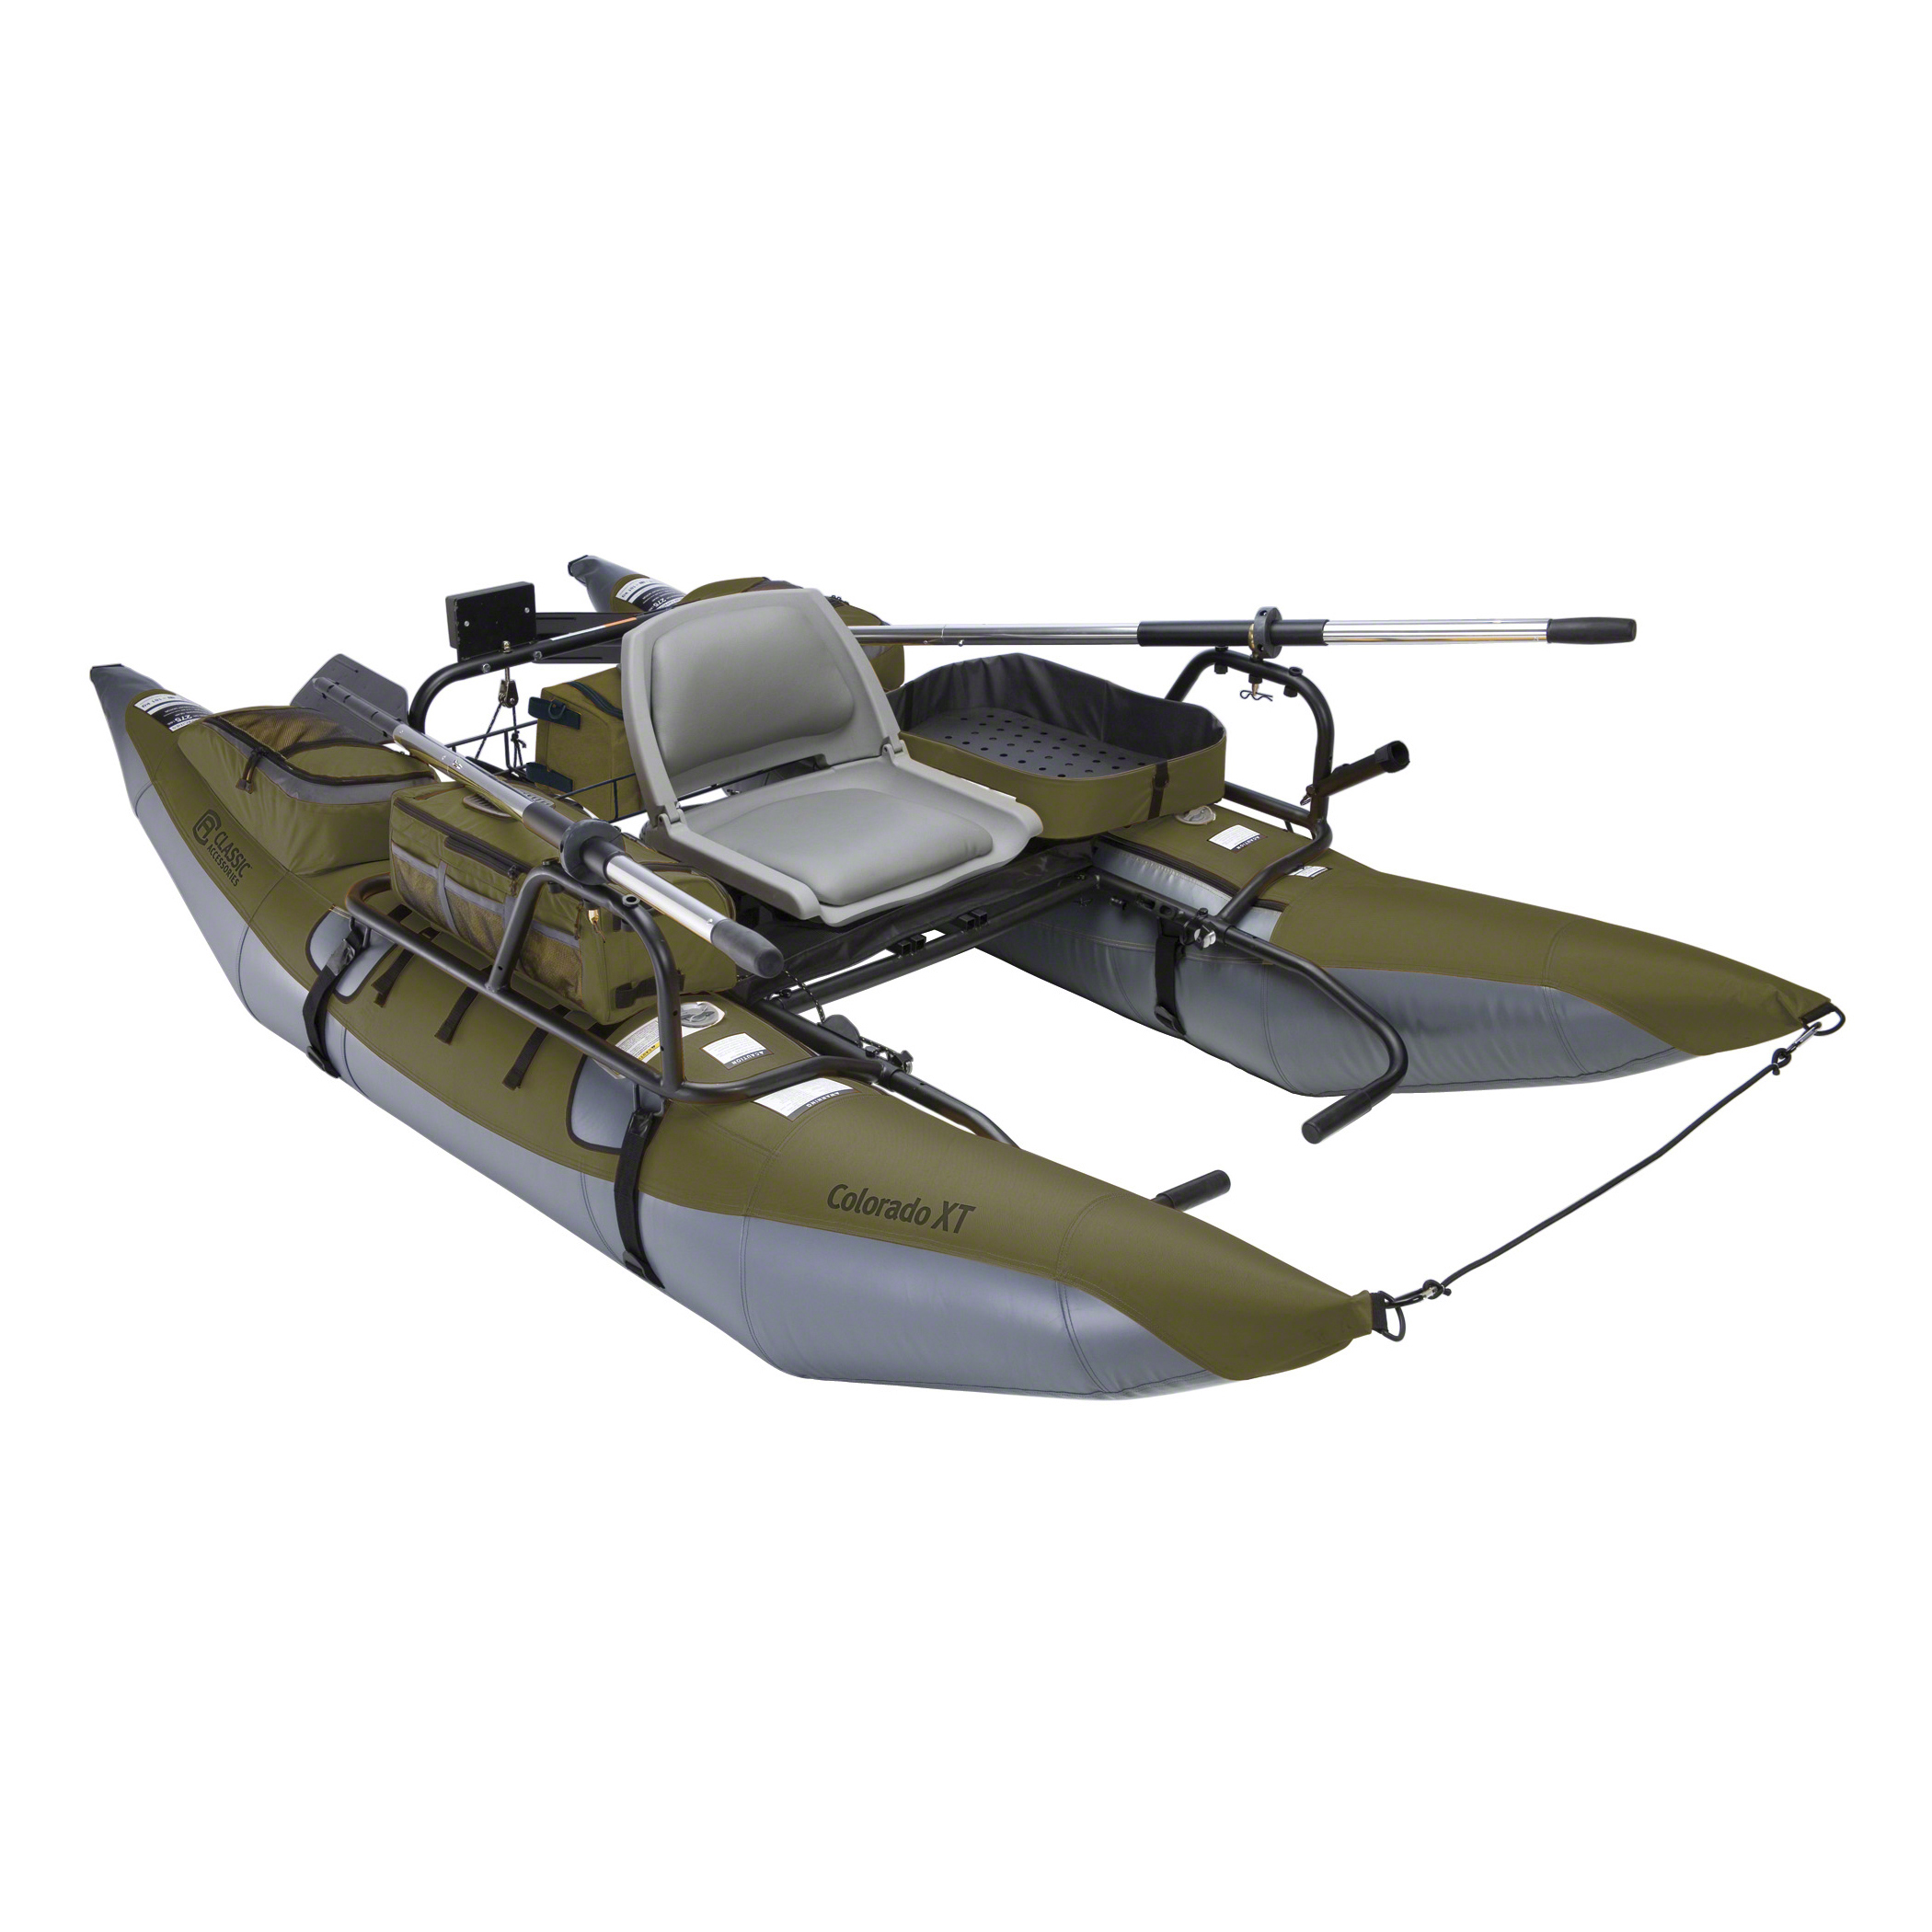 Click here to buy Classic Accessories Colorado XT Pontoon Fishing Boat, Sage by Classic Accessories.